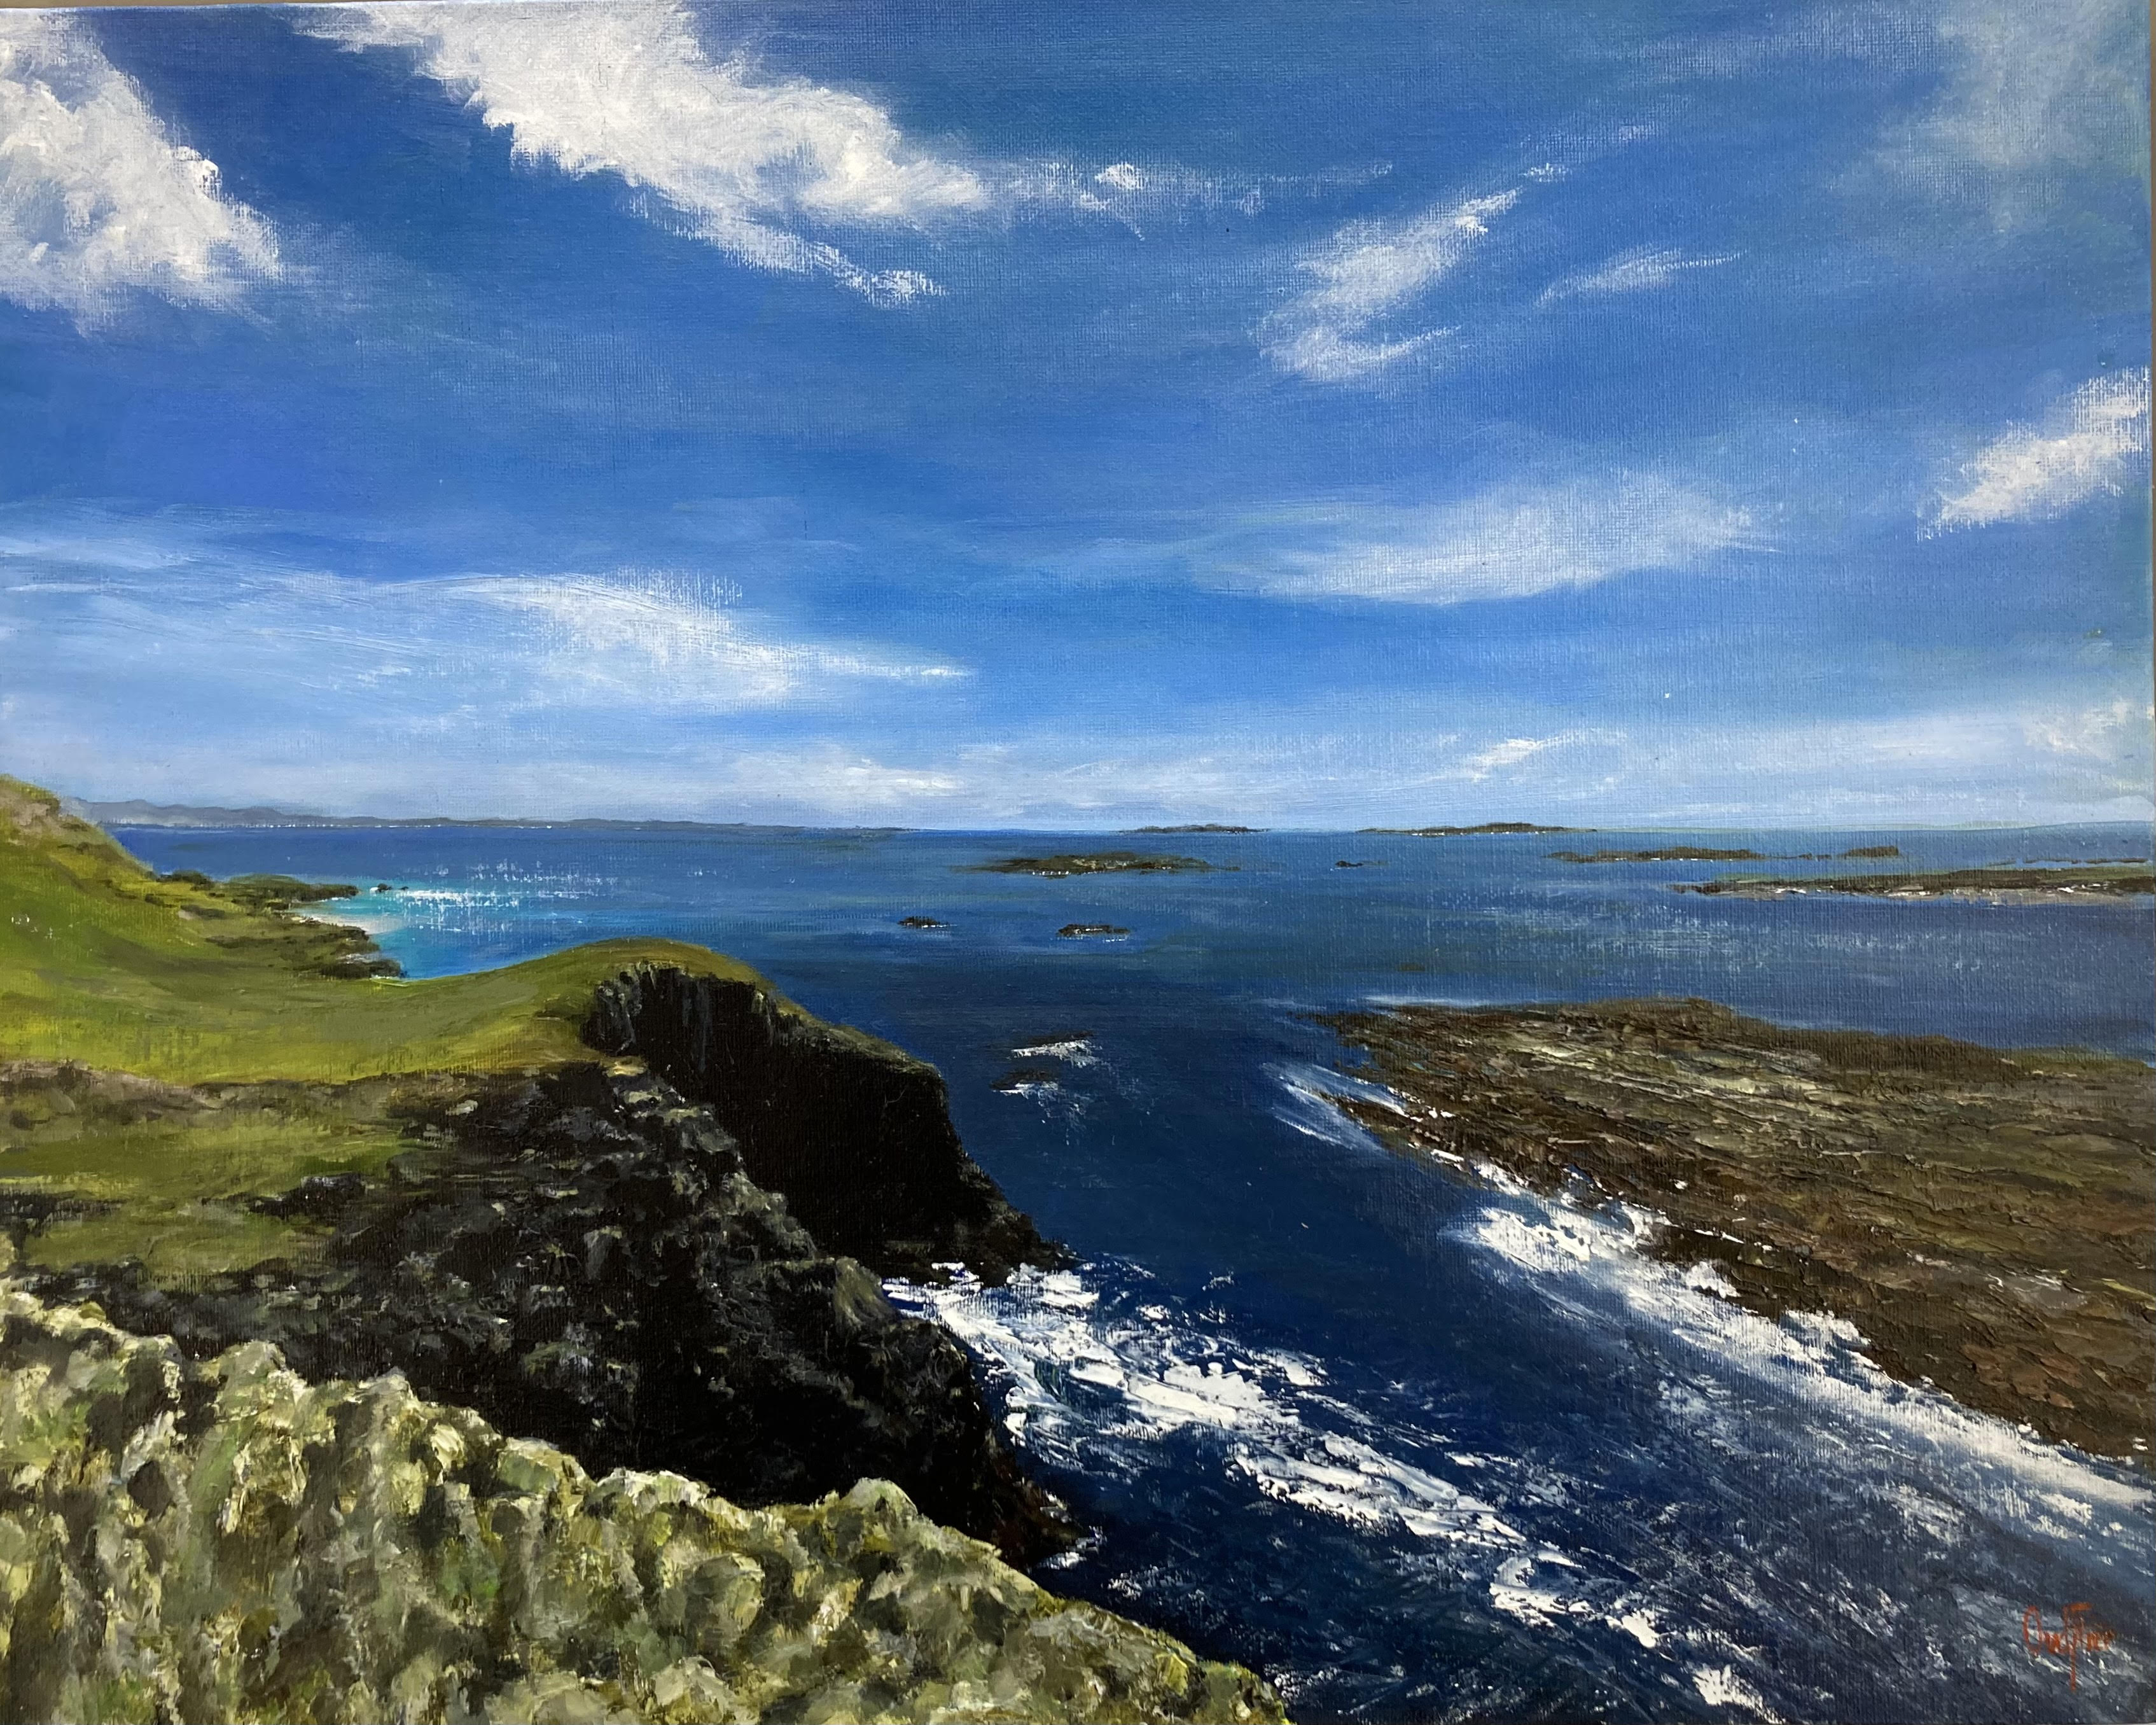 West End, Inishbofin by Olly van der Flier